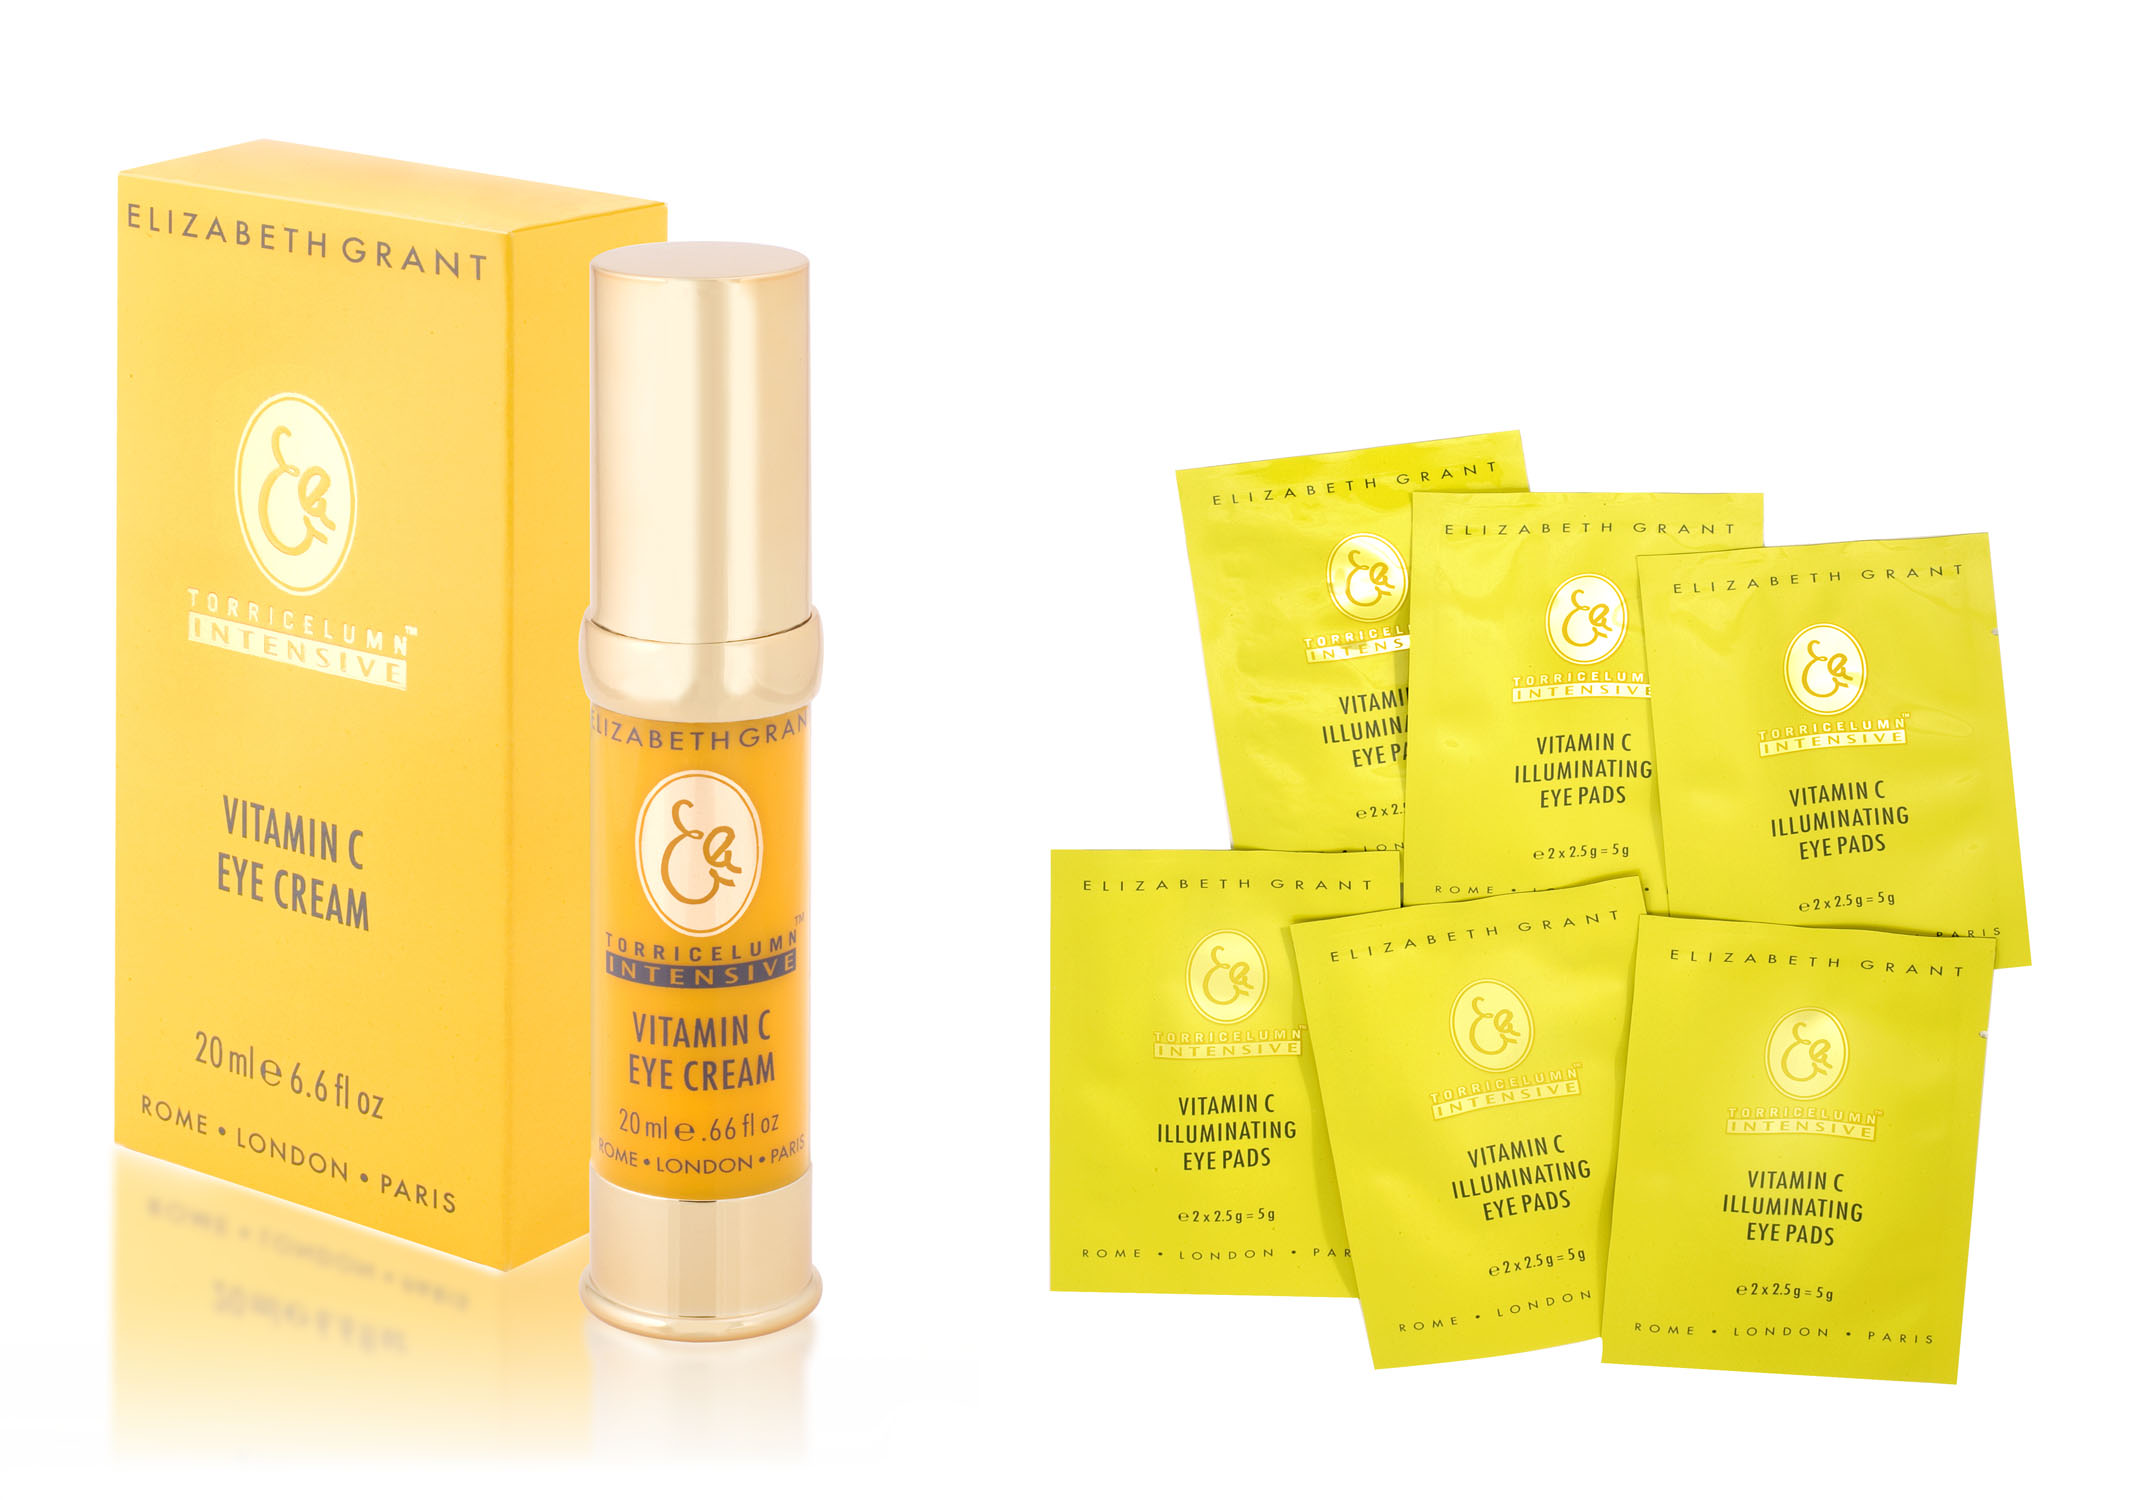 Elizabeth Grant Vitamin C Eye Cream & Vitamin C Eye Pads